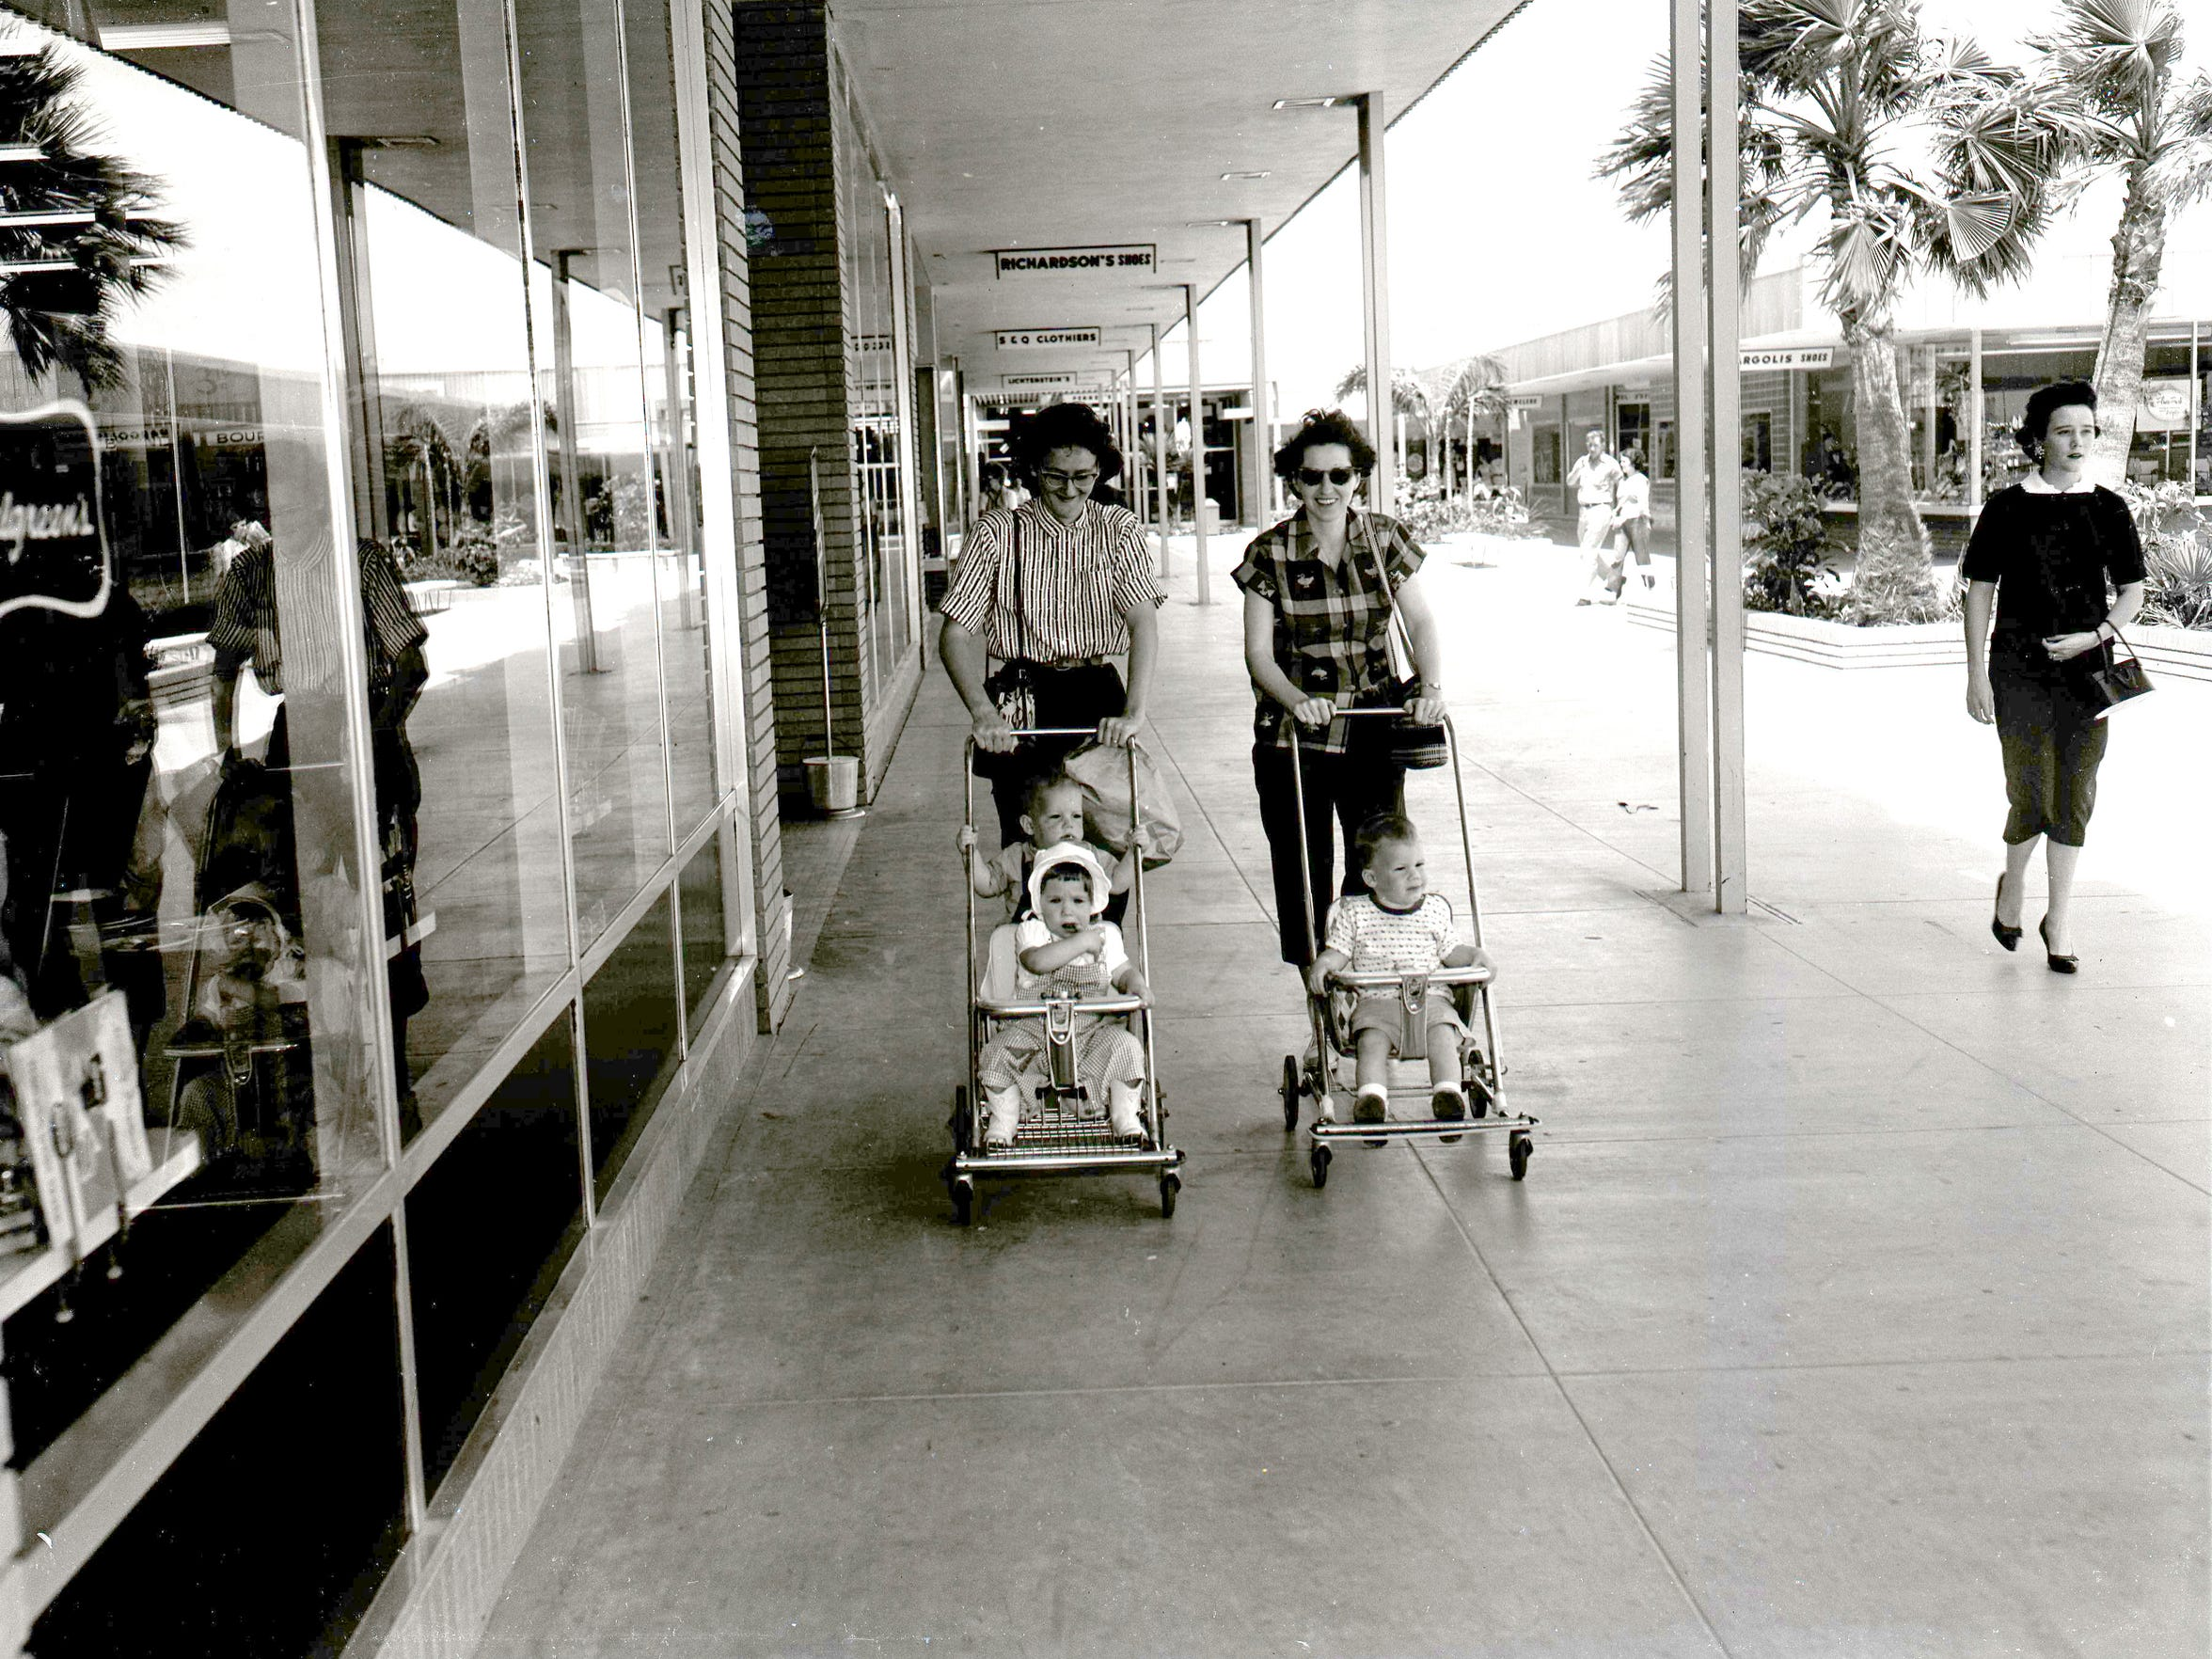 Parkdale Plaza was nearing its one-year anniversary in April 1958 as these shoppers walked the concourse in front of Walgreen's. Other tenants were Richardson's Shoes, S&Q Clothiers and Lichtenstein's department store.